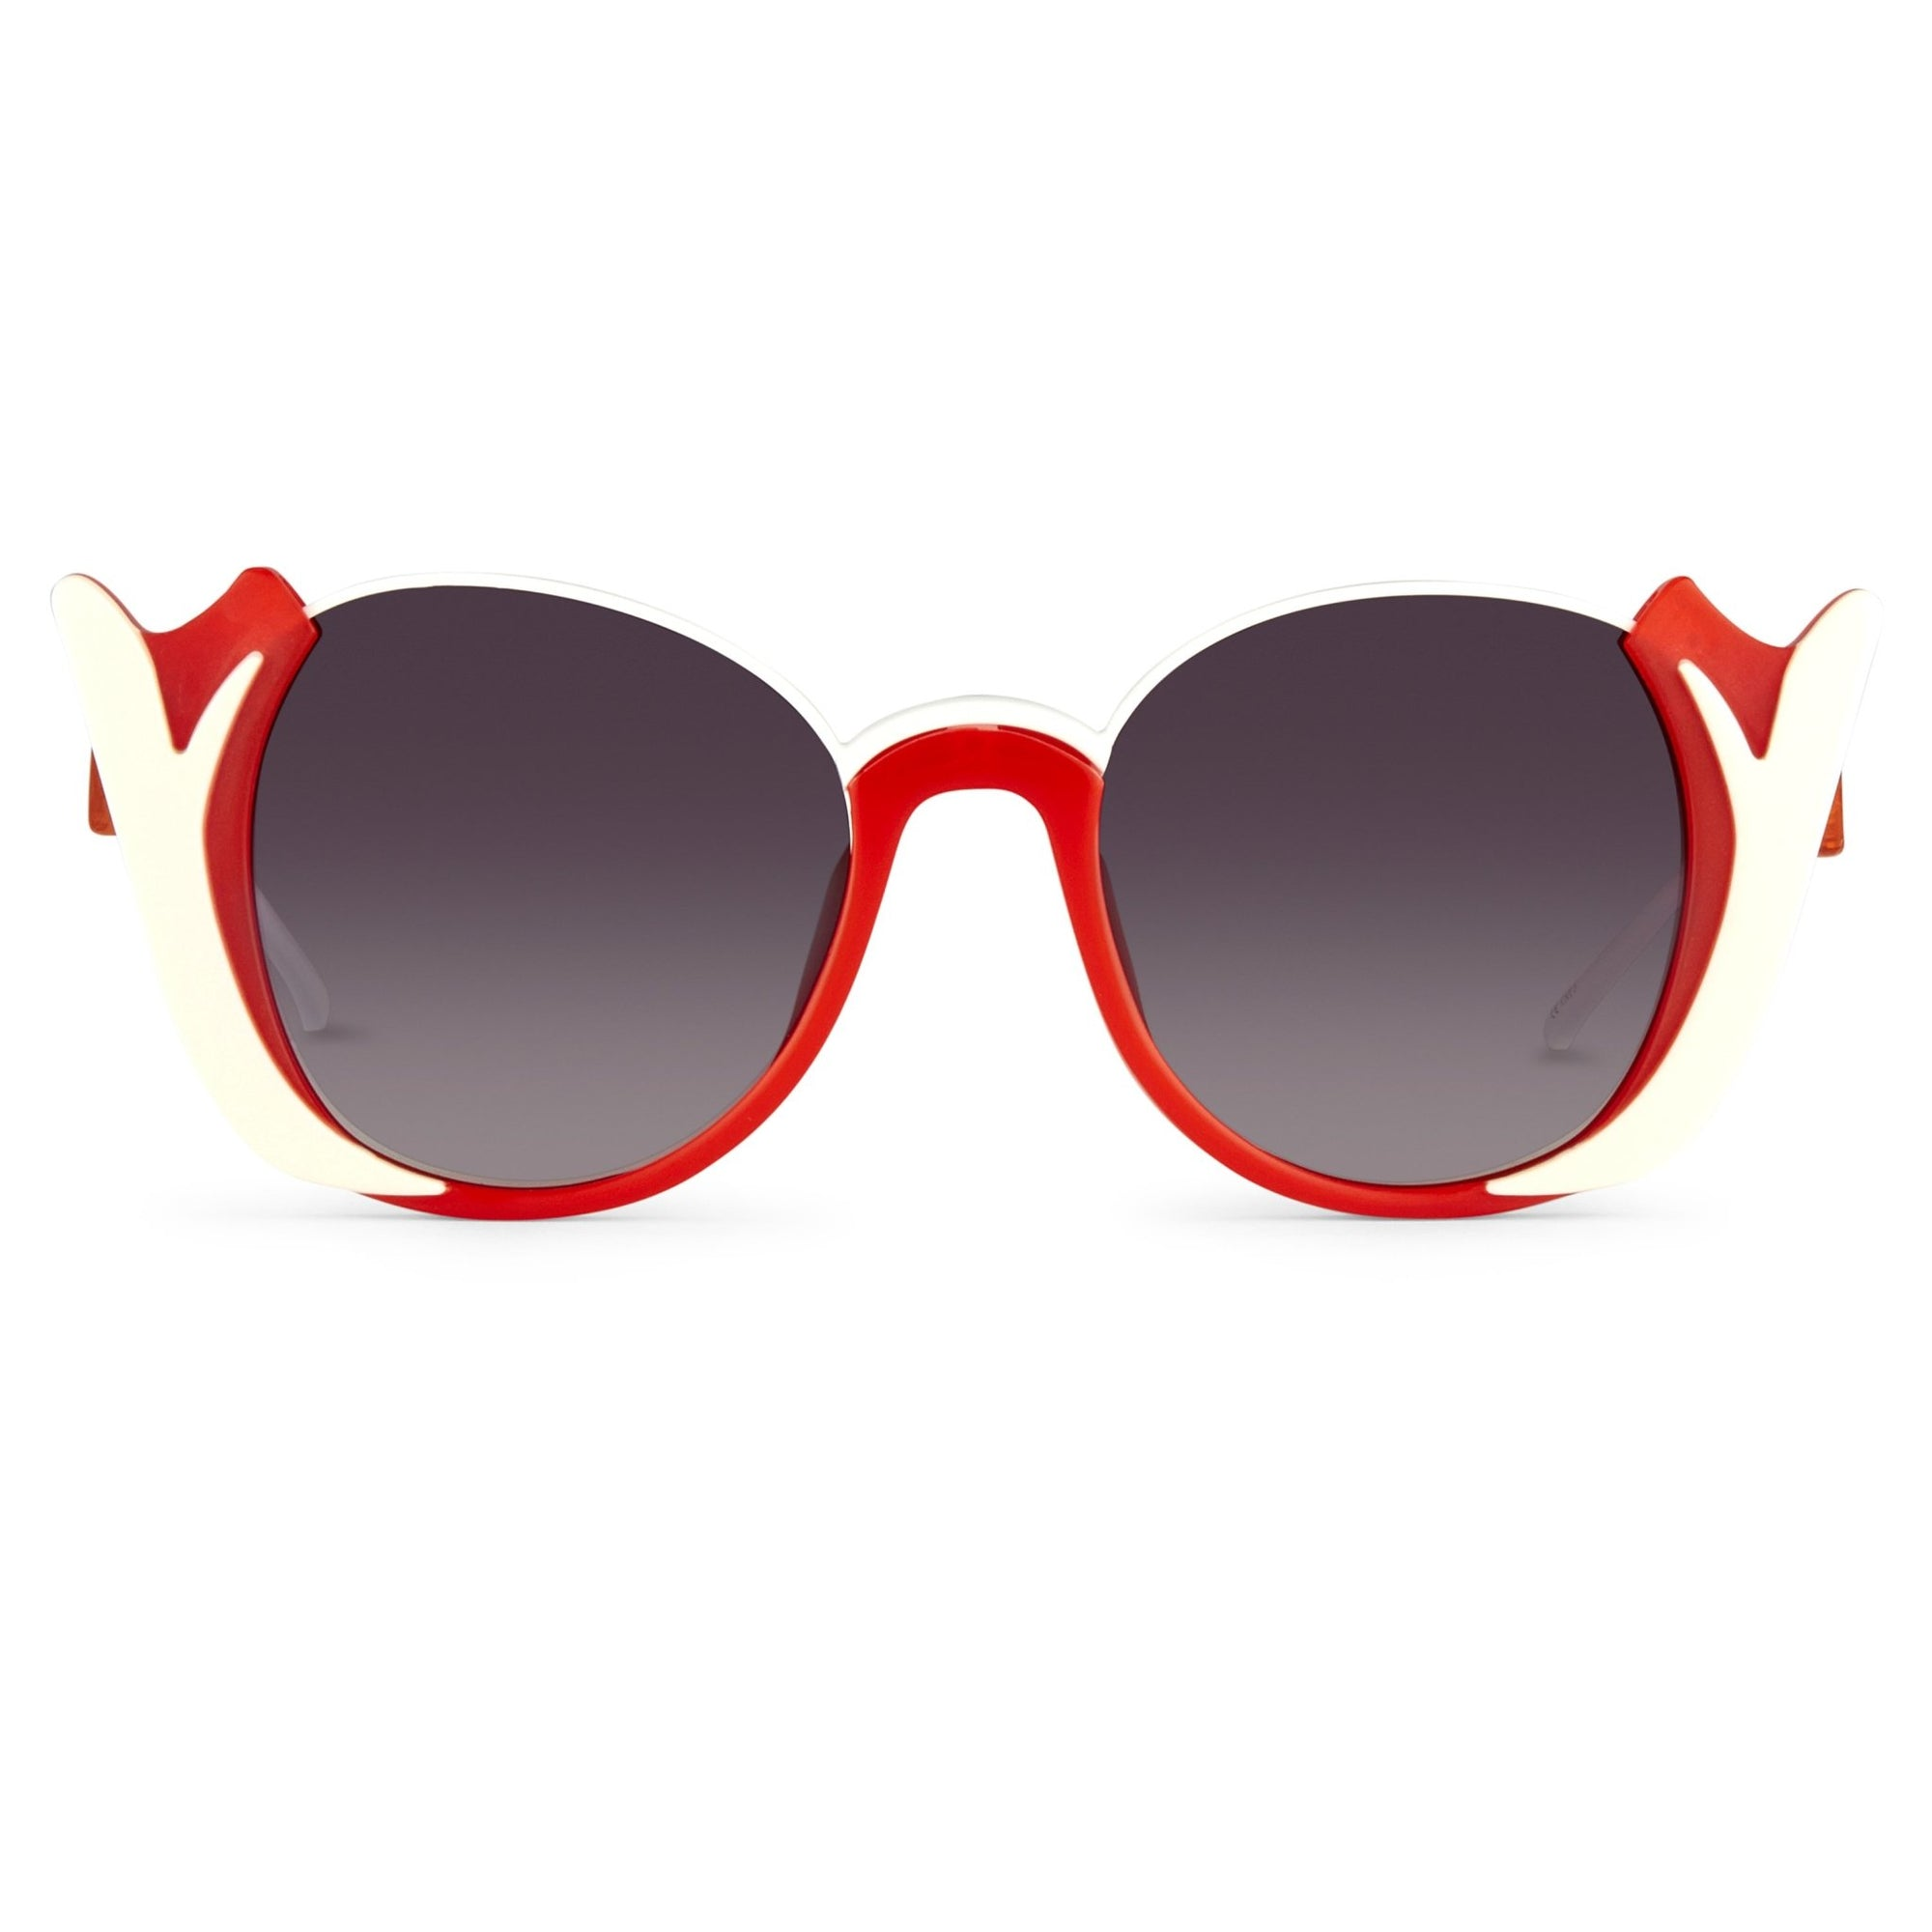 Prabal Gurung Sunglasses Round Crimson Ivory White With Dark Grey Category 3 Graduated Lenses PG24C4SUN - Watches & Crystals